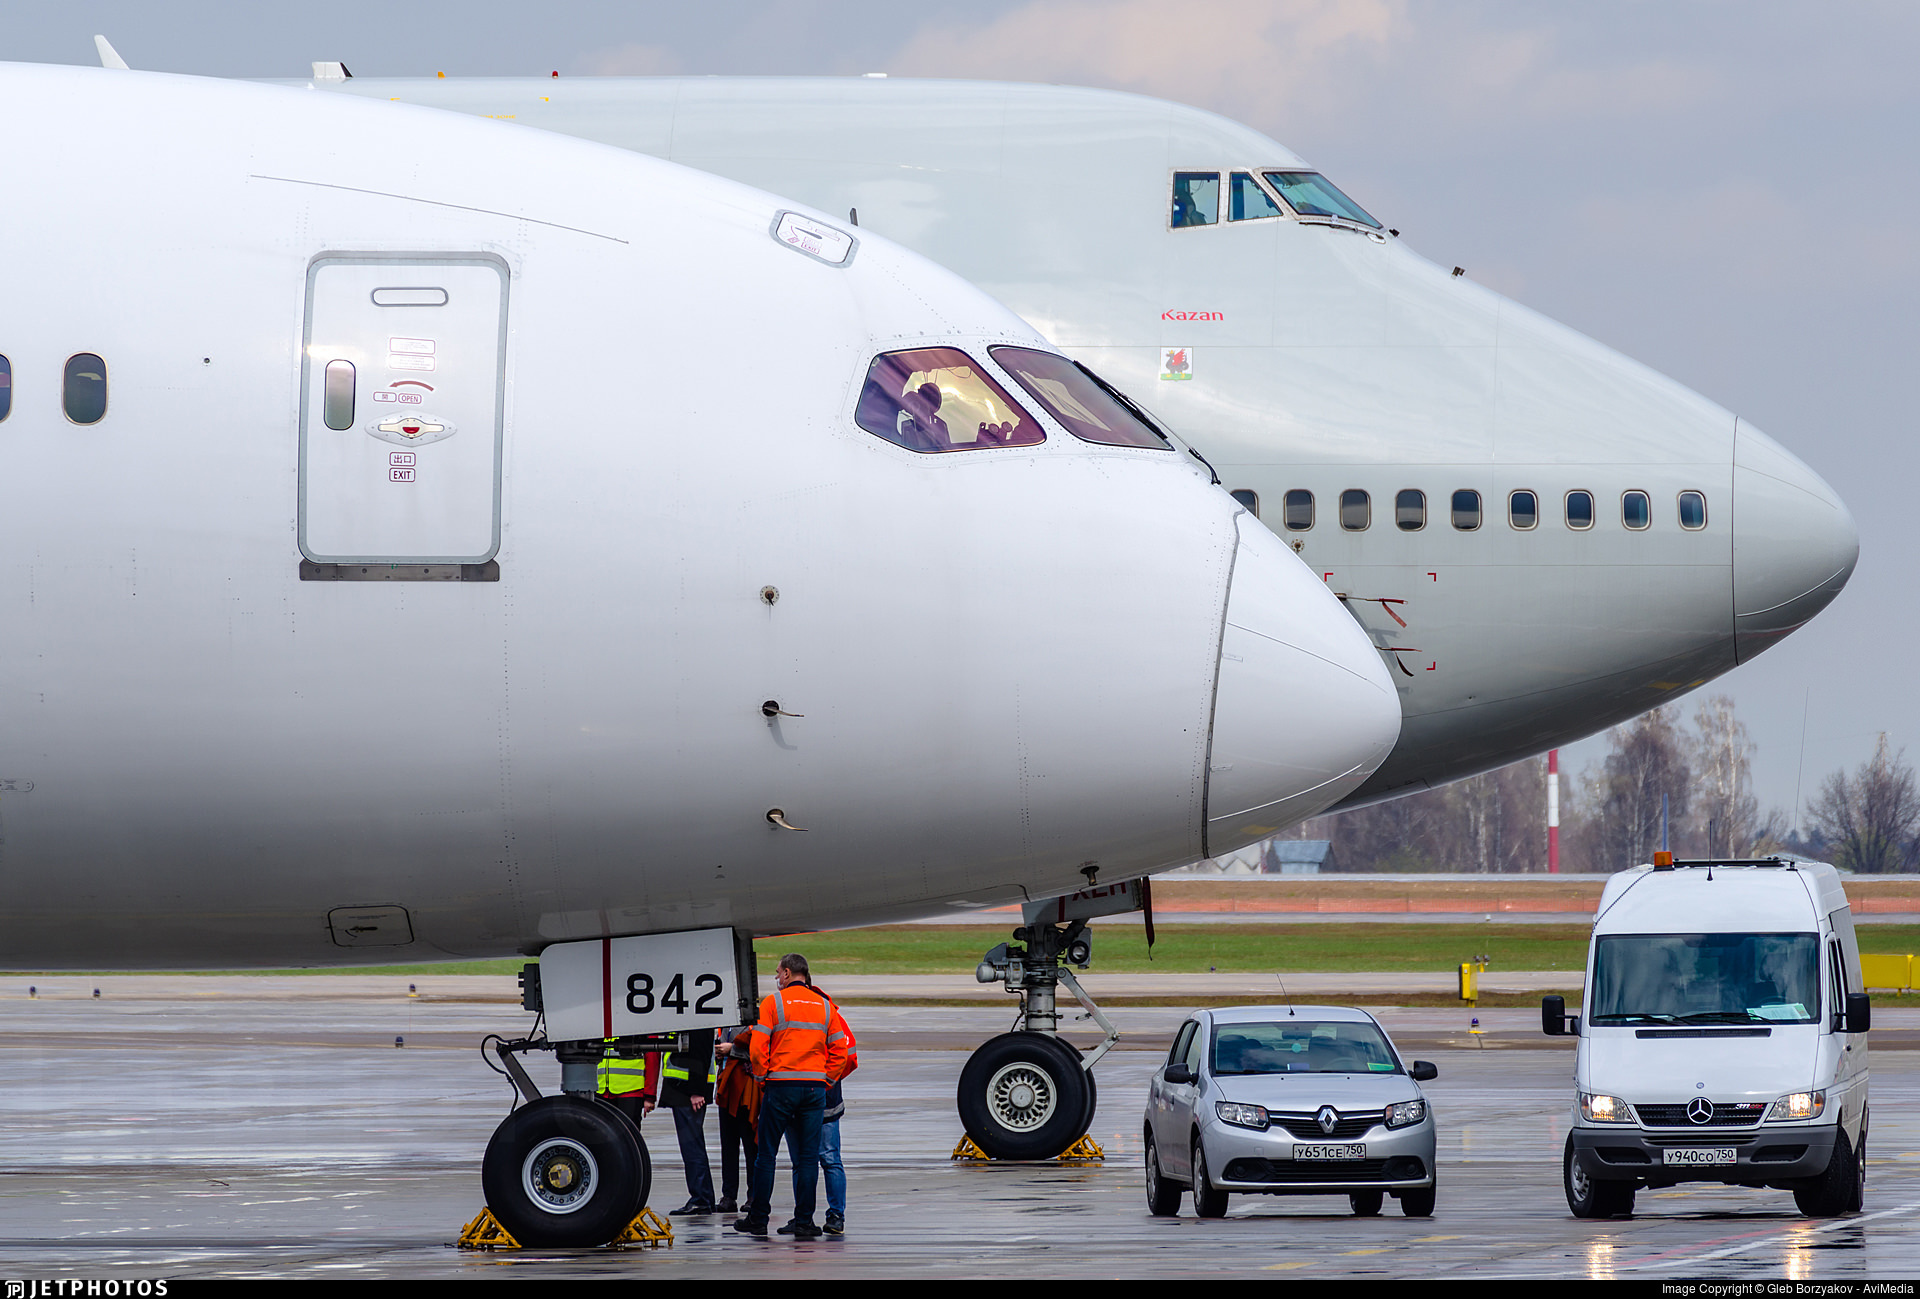 A 787 and 747 parked next to each other in Moscow with just the nose of each aircraft visible